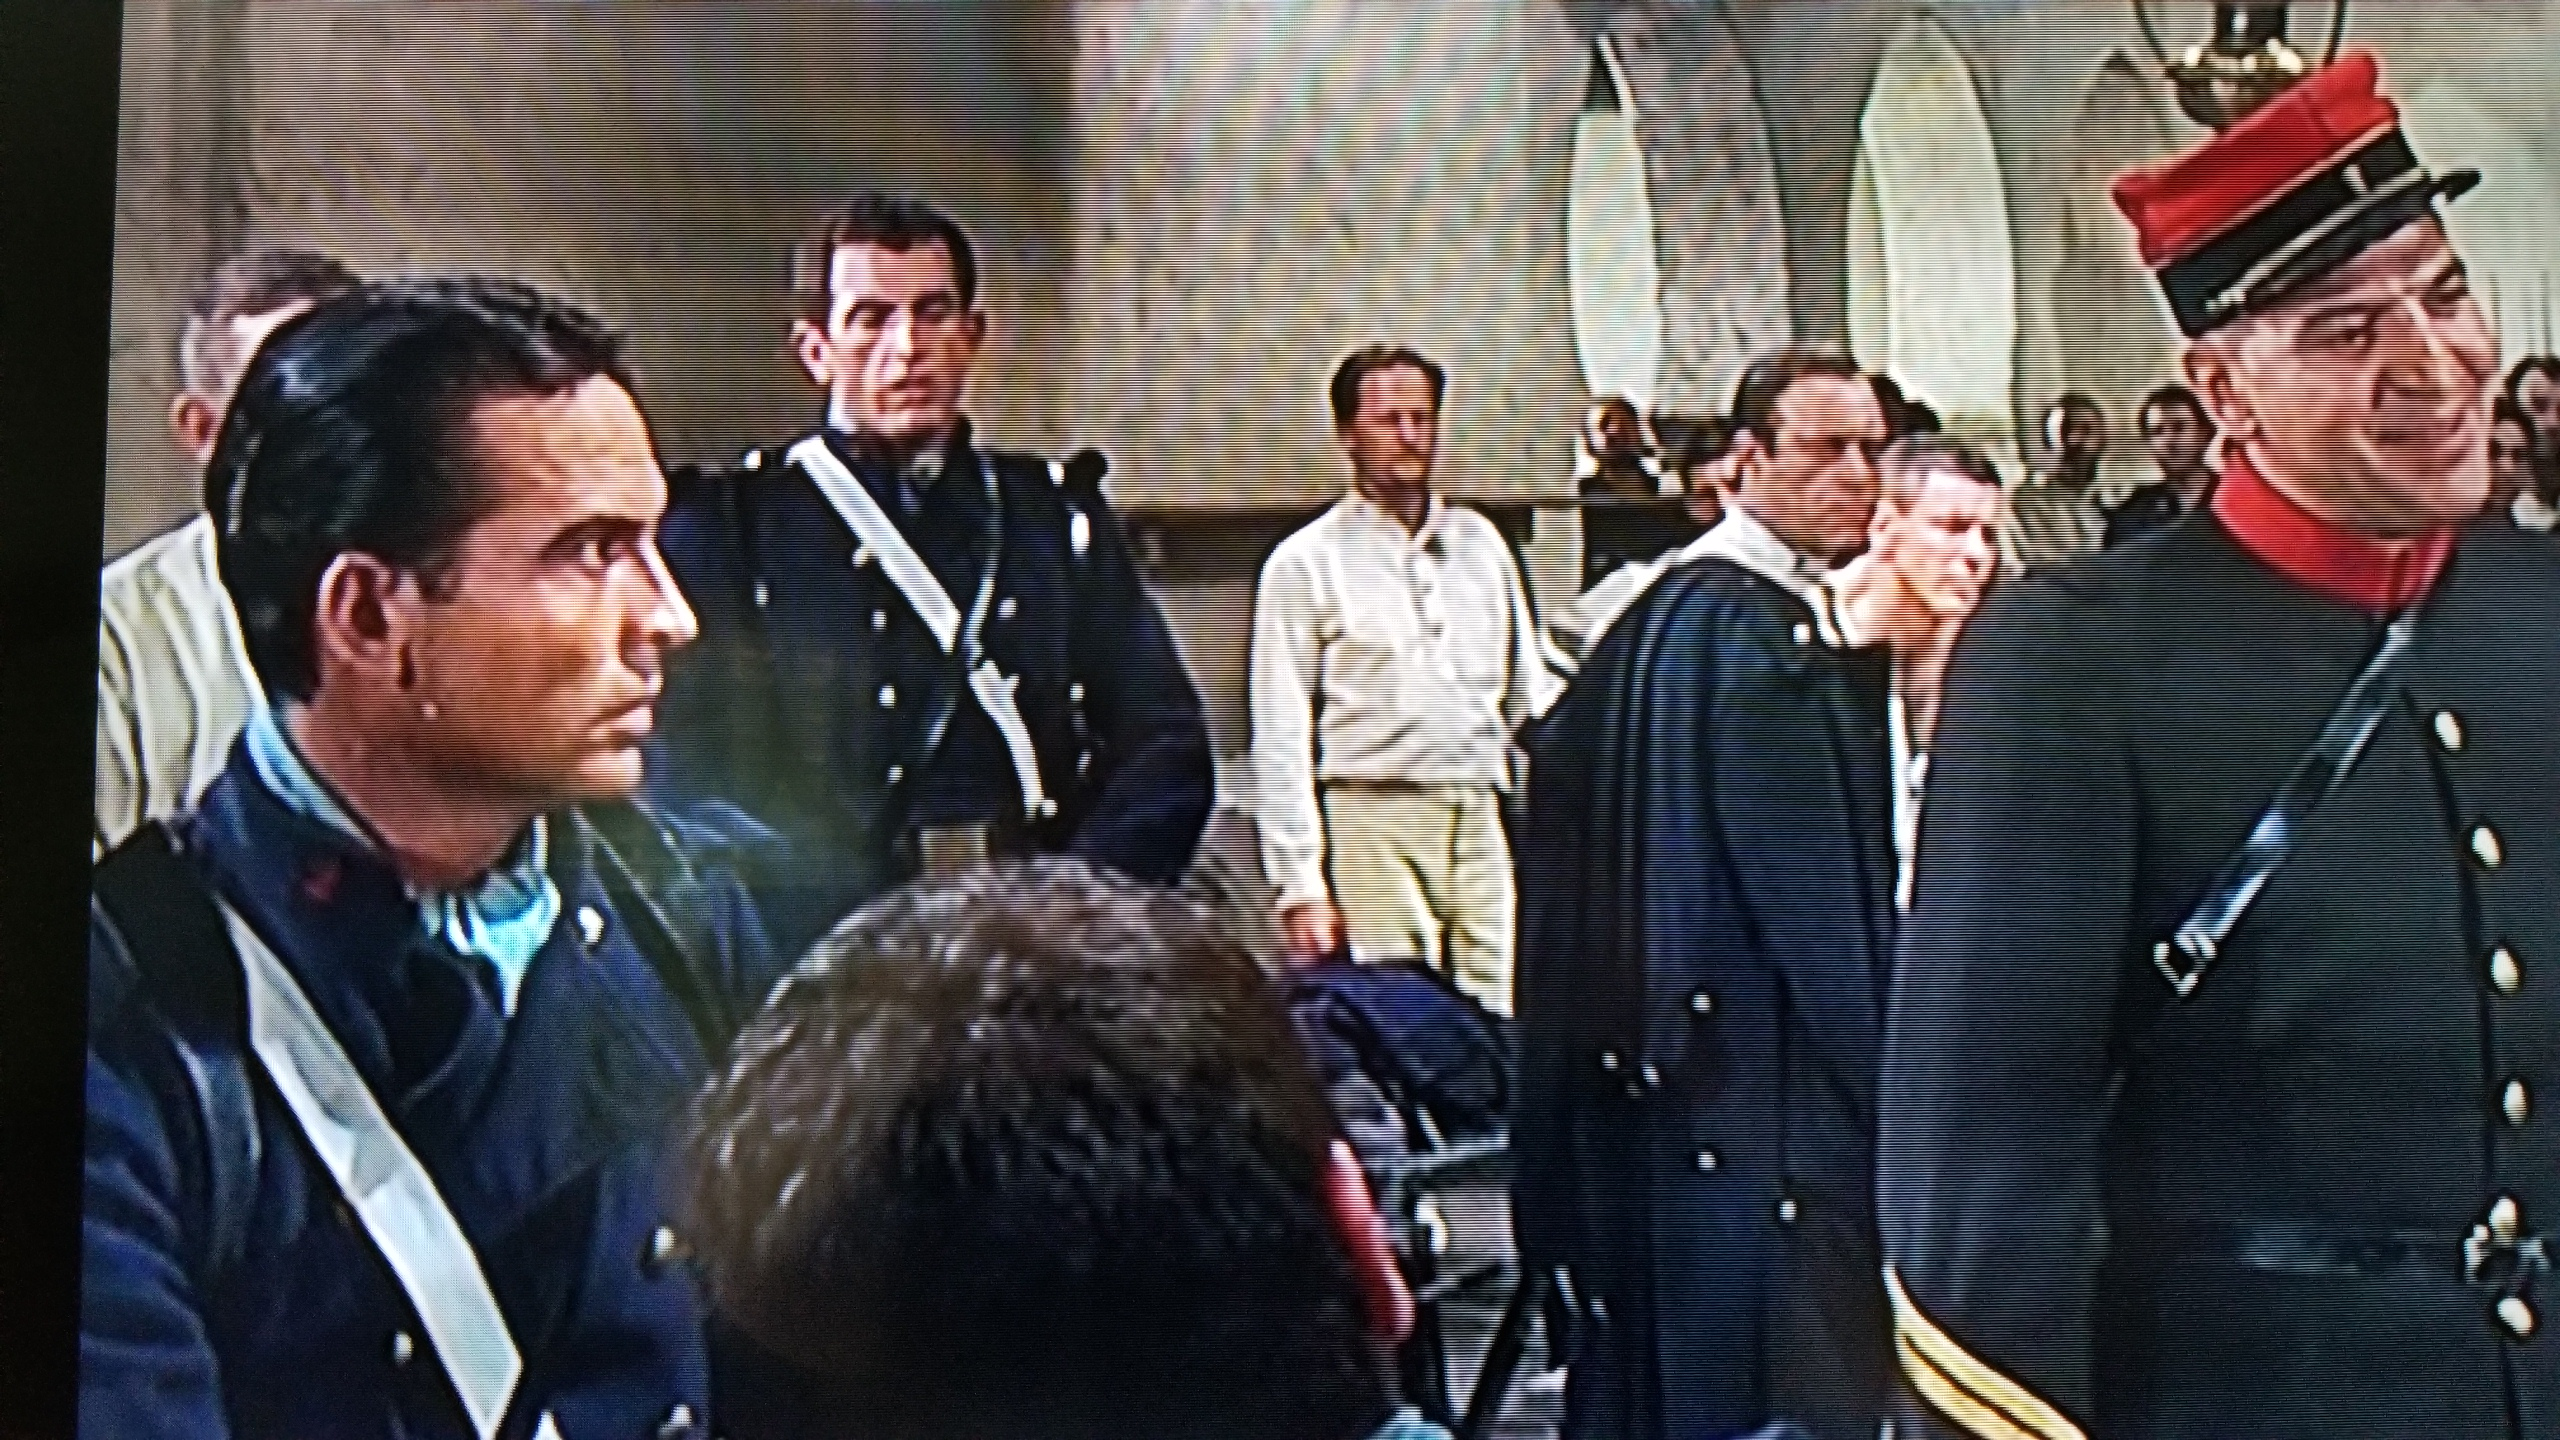 Telly Savalas and X Brands in Beau Geste (1966)